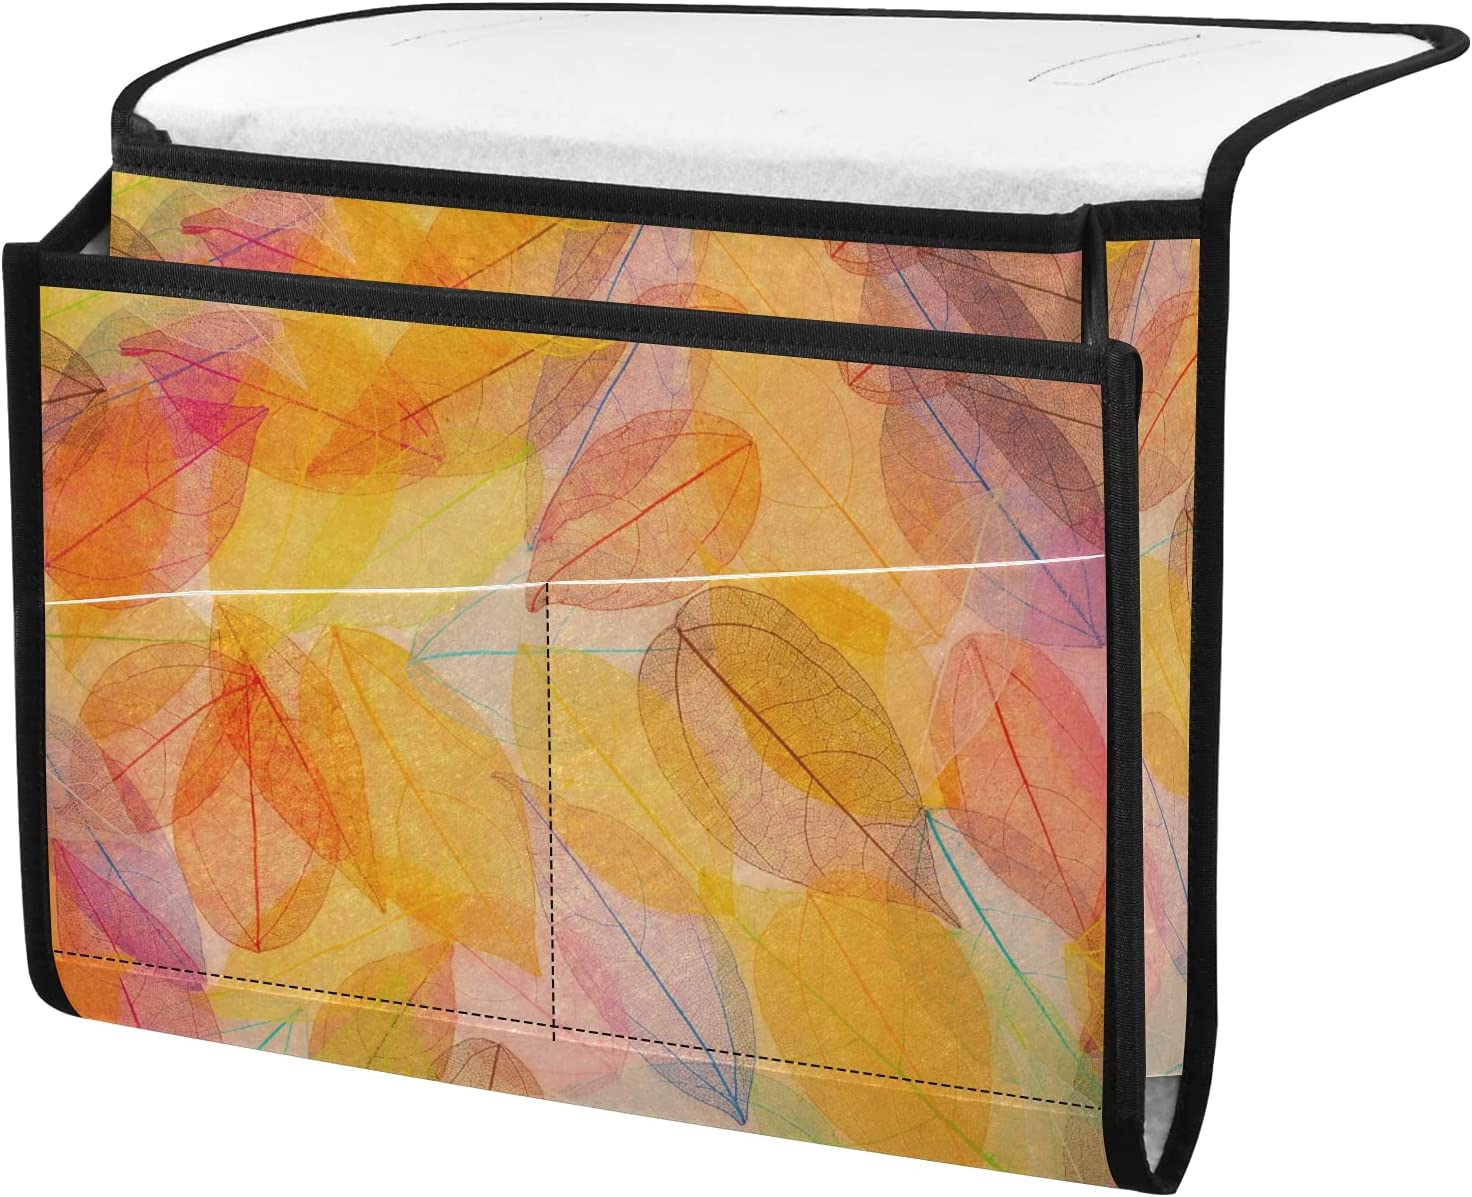 Challenge the lowest price of High order Japan Aichsoka Fall Thansgiving Leaves Bedside Bedsi Storage Organizer